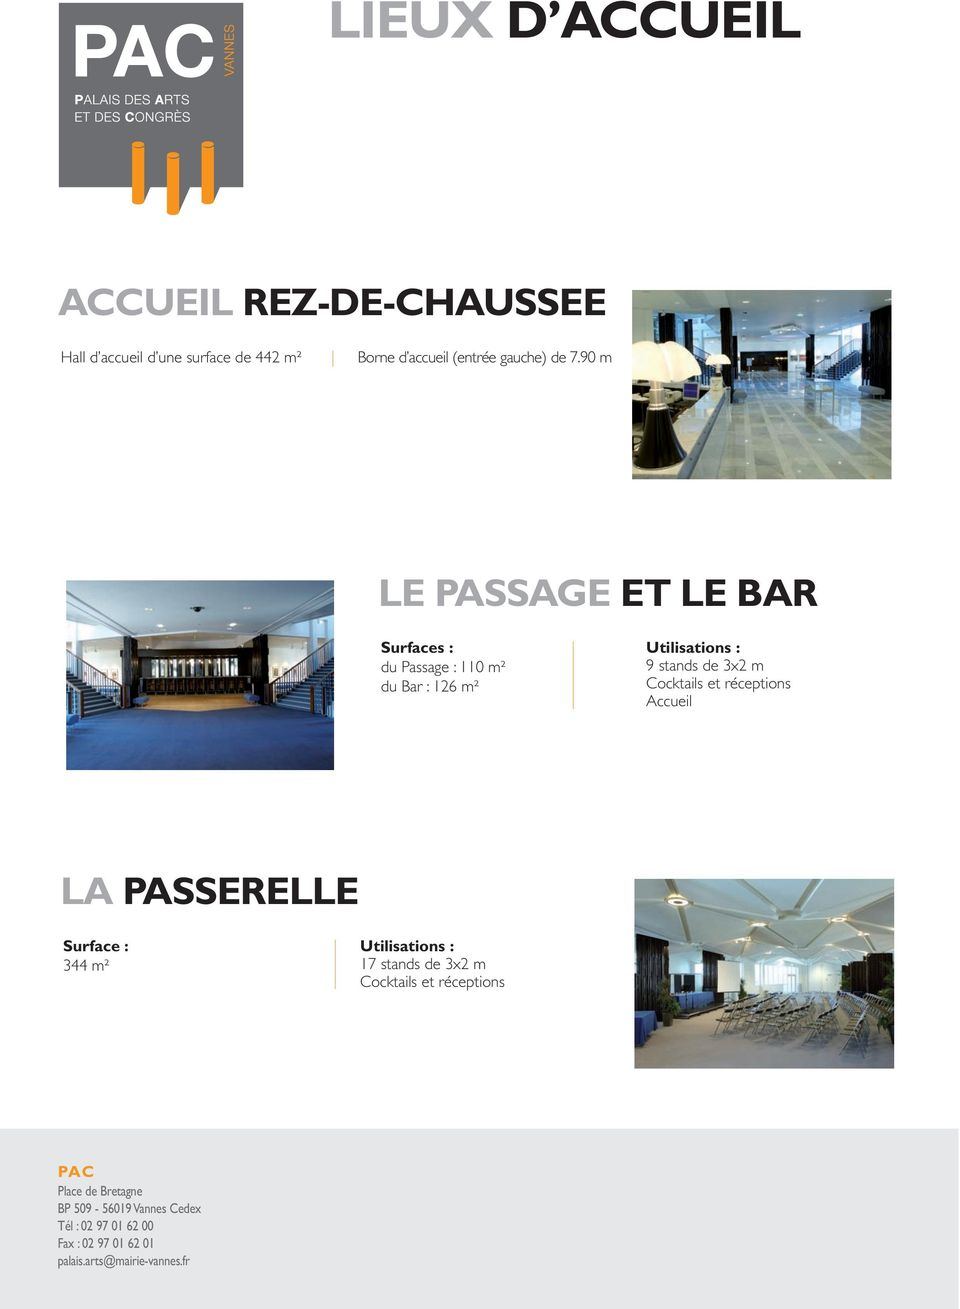 90 m LE PASSAGE ET LE BAR Surfaces : du Passage : 110 m² du Bar : 126 m² 9